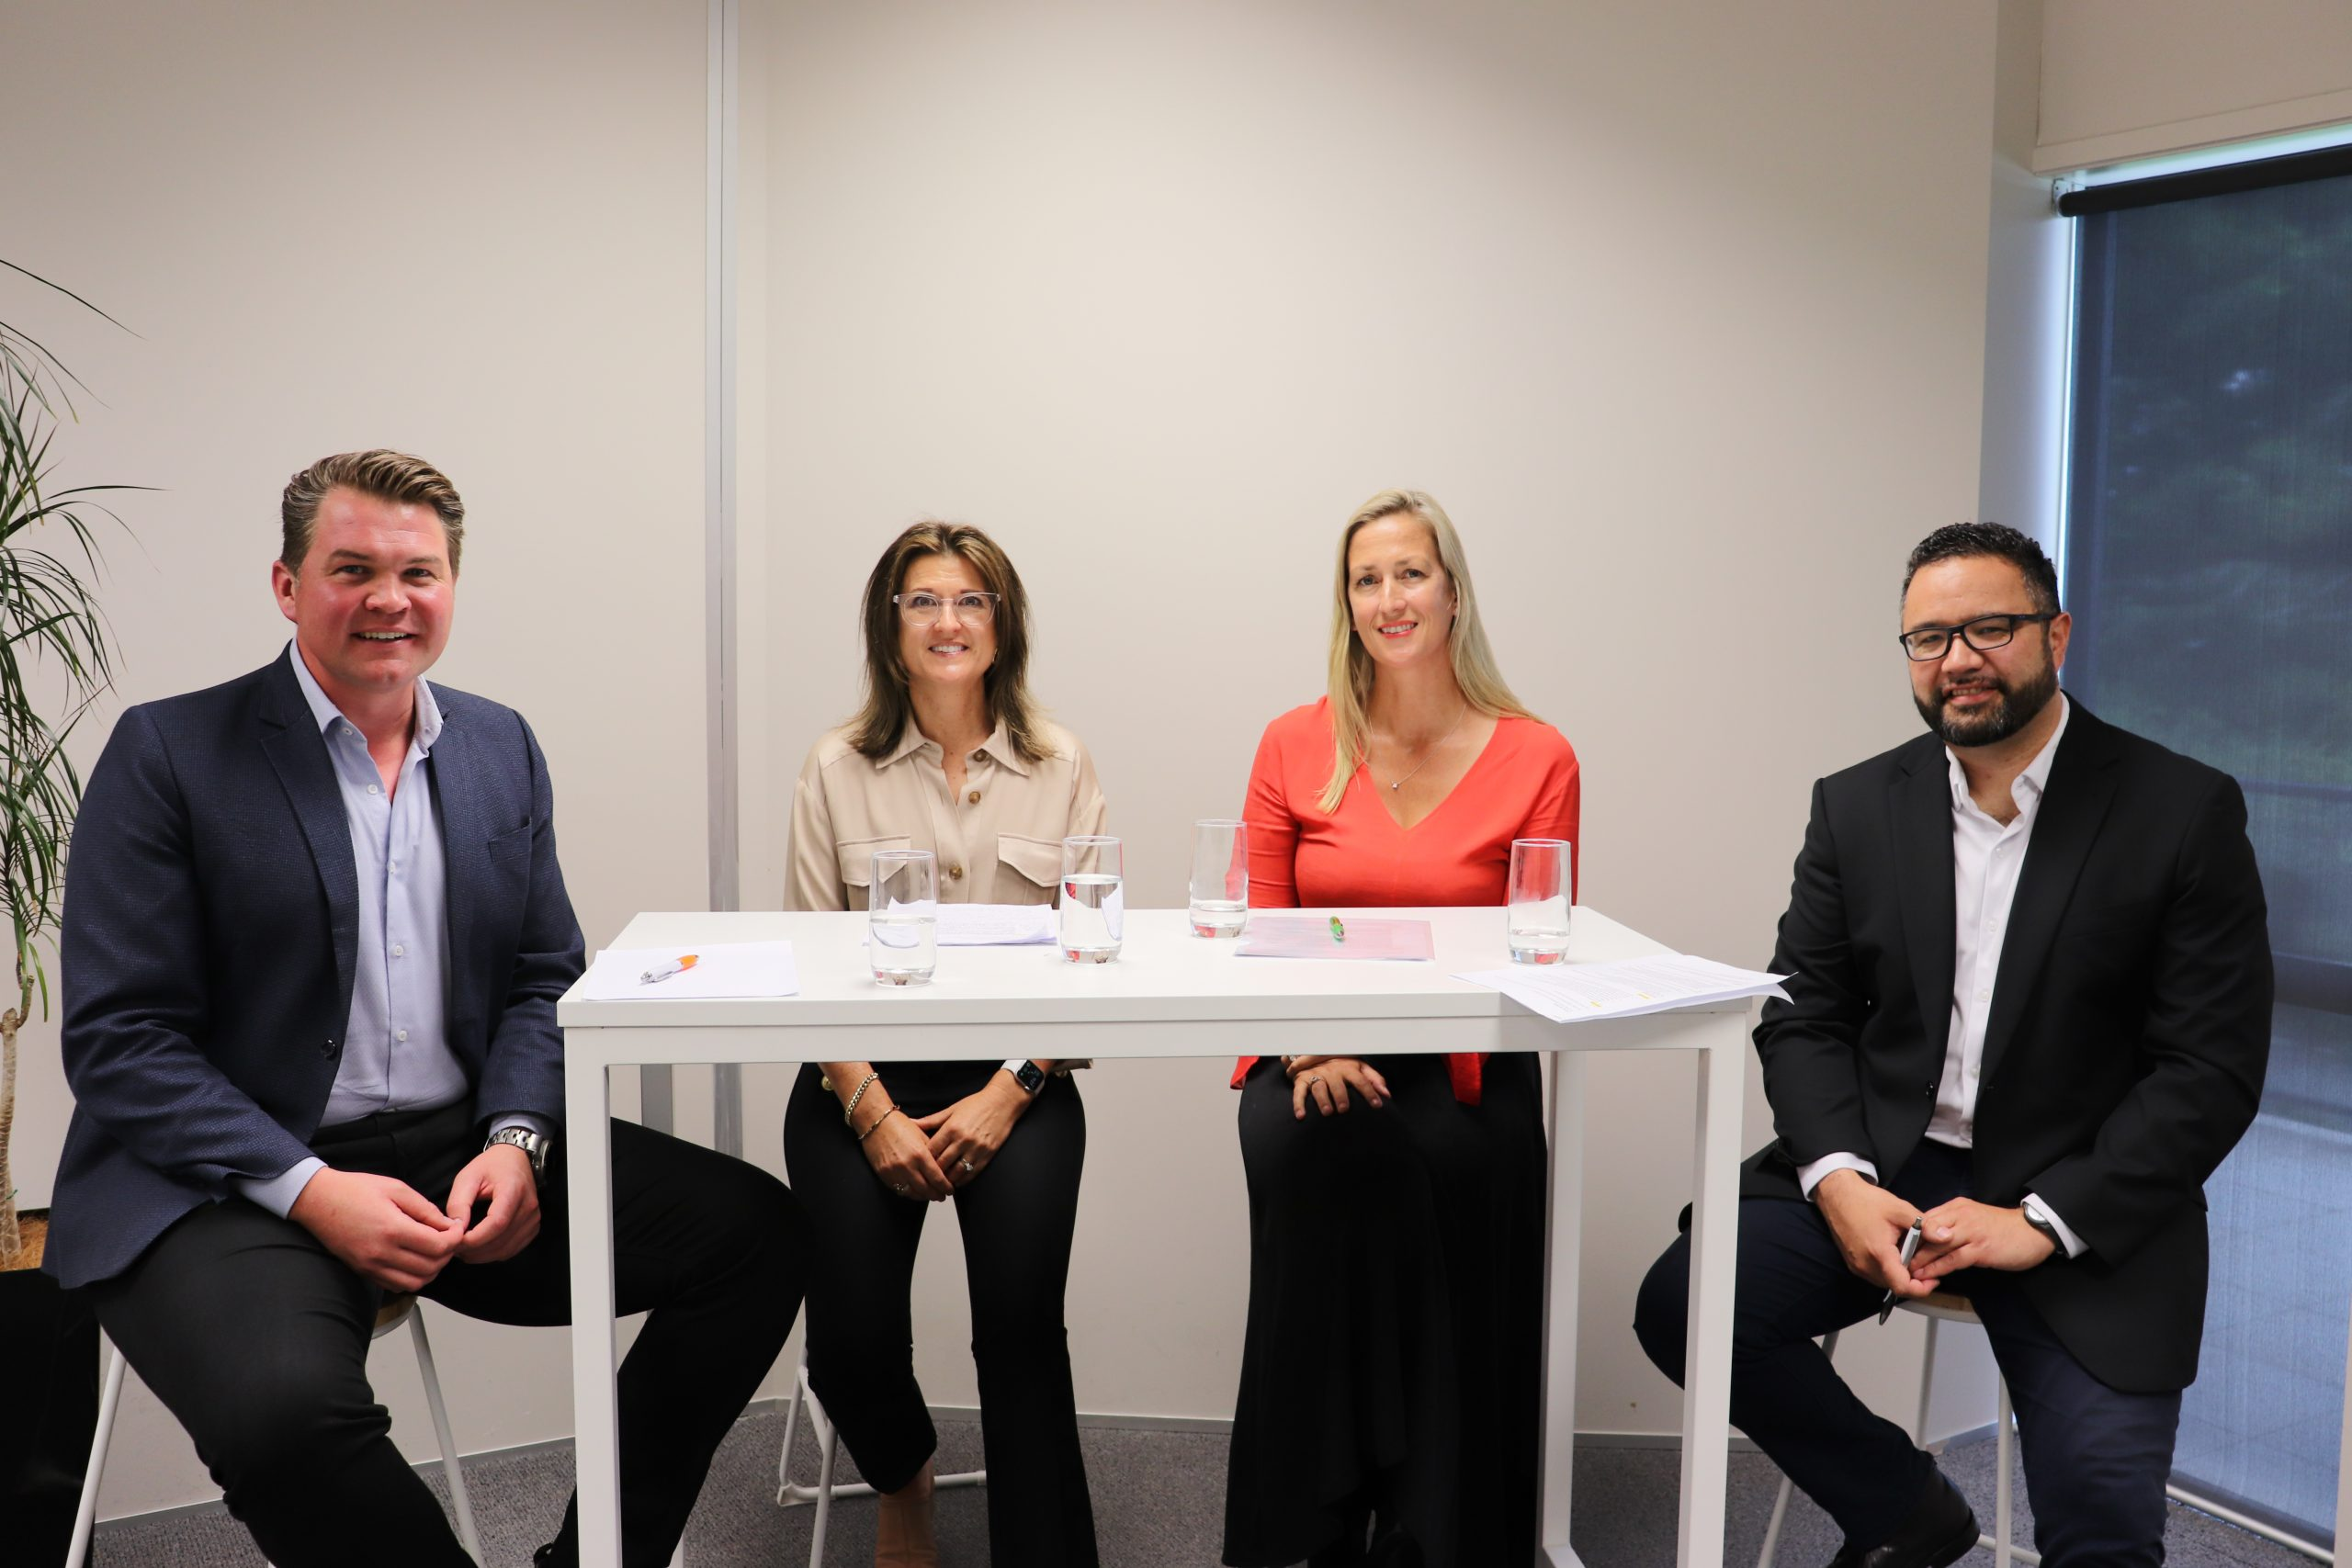 Business leaders sit on a panel discussion with CEO Matt Cowley